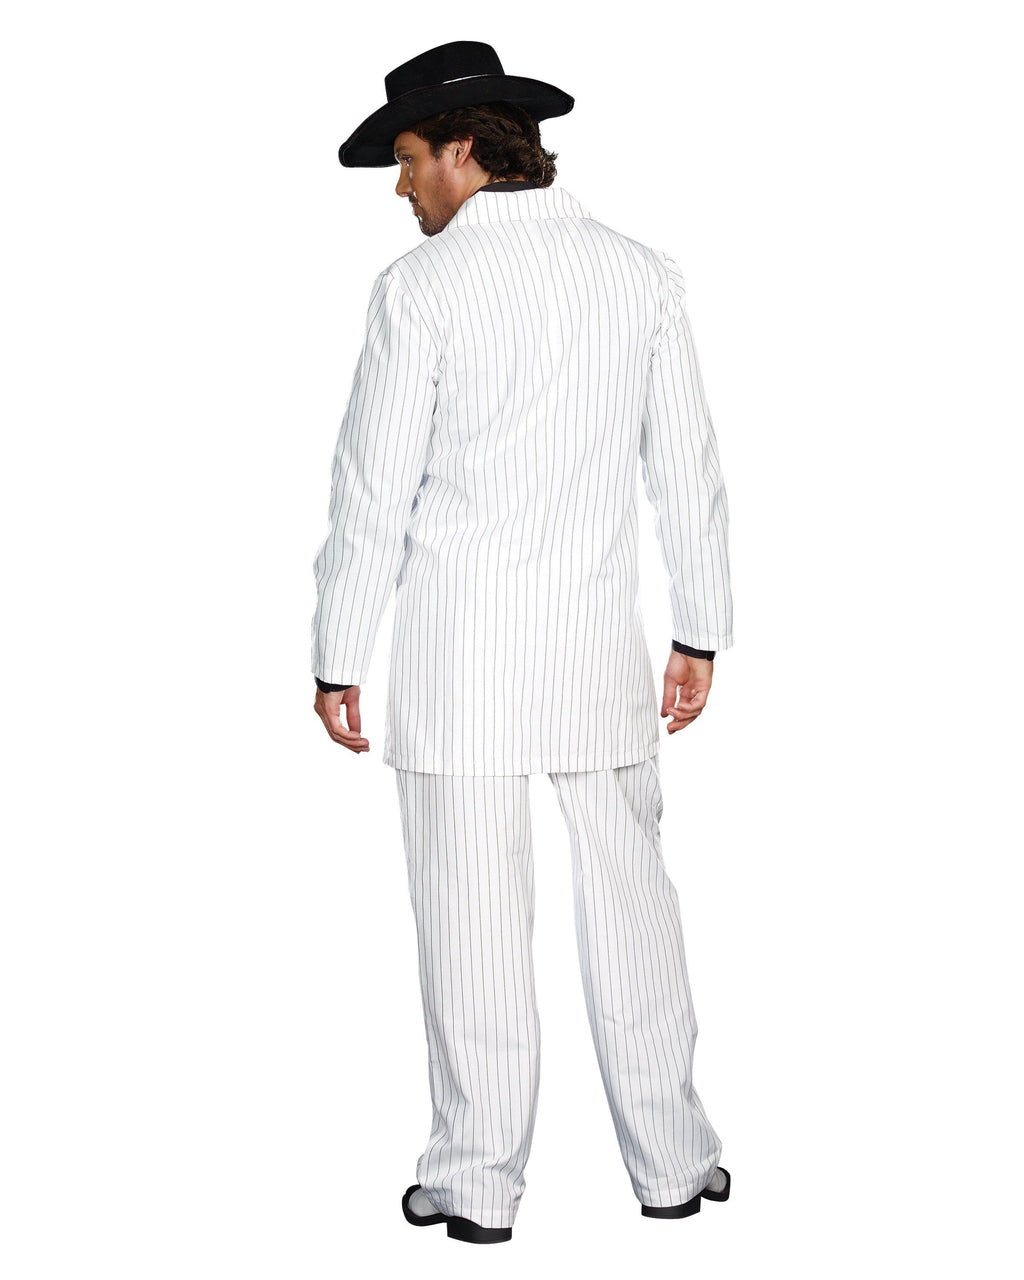 Zoot Suit Riot Men's Costume Dreamgirl Costume